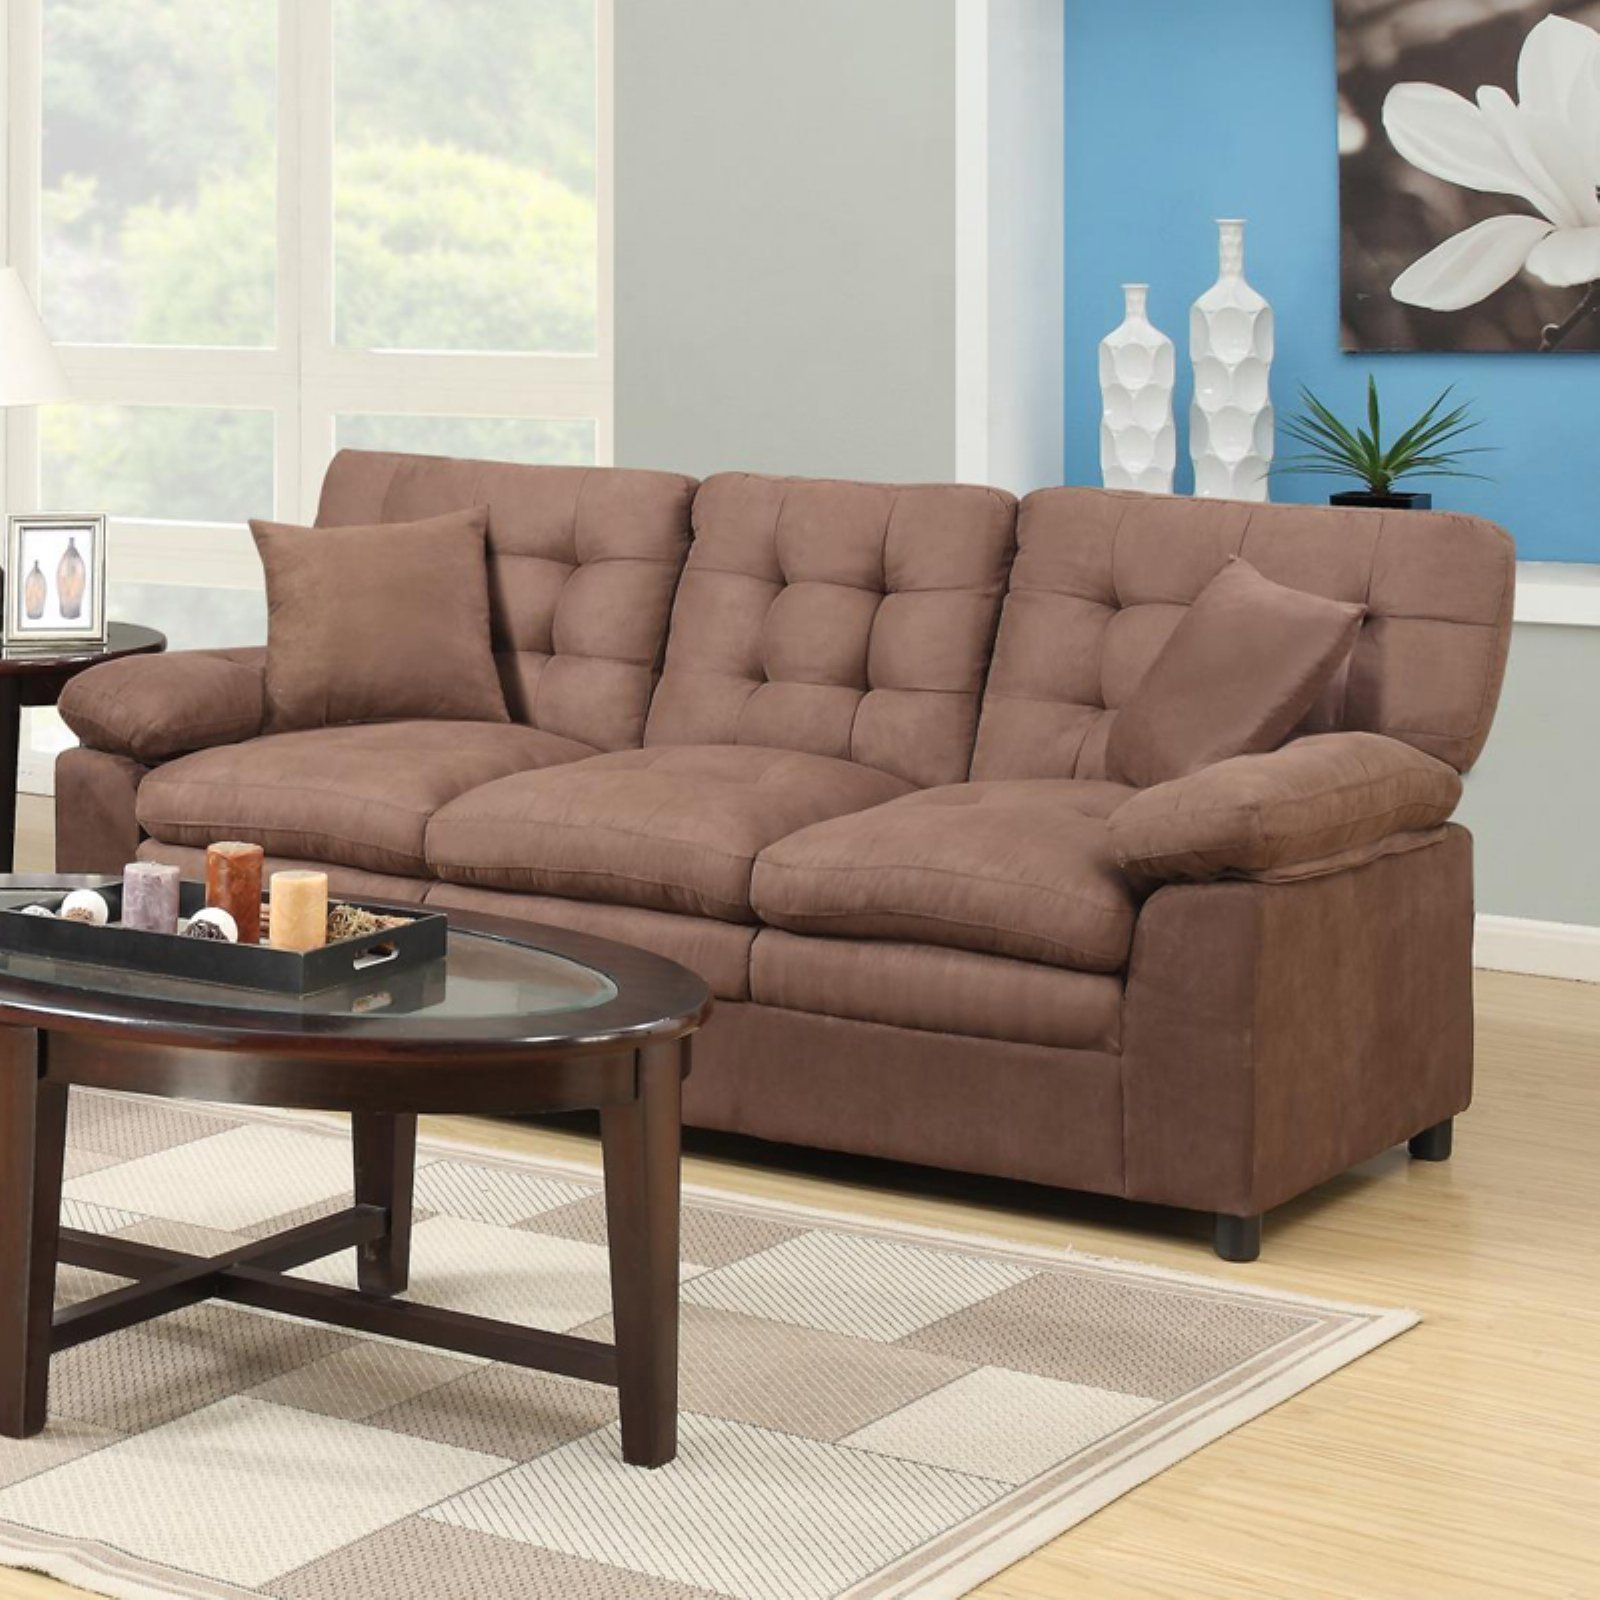 Home Source Industries Buchannan Microfiber Sofa Brown